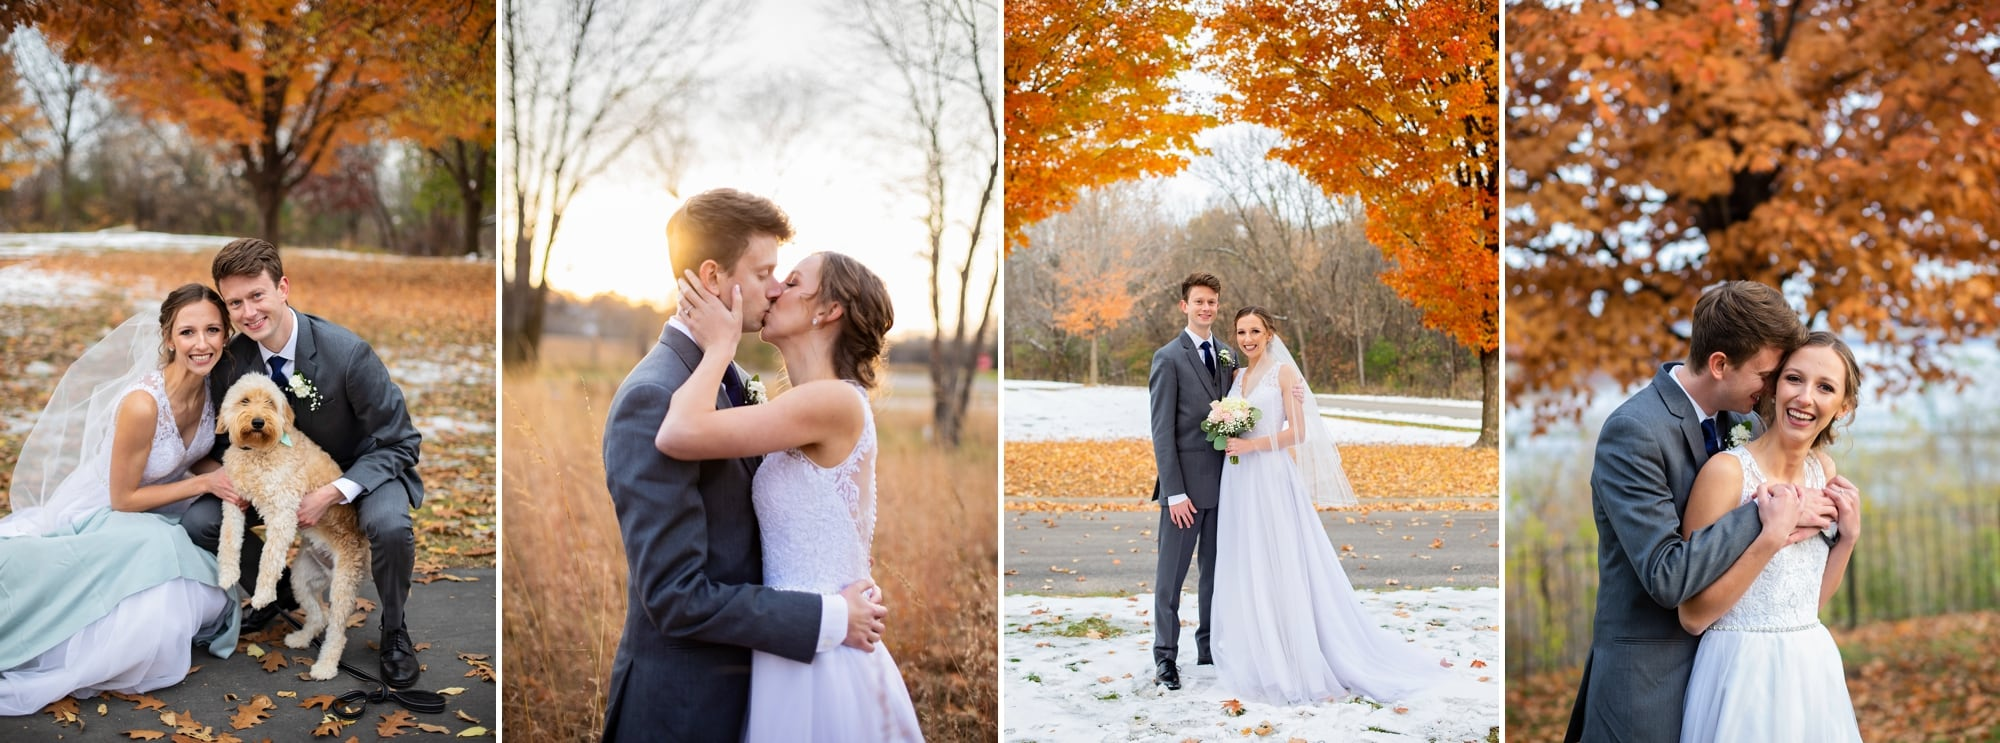 Autumn wedding photo gallery for Christina and Justin at Oak Glen Golf Course.